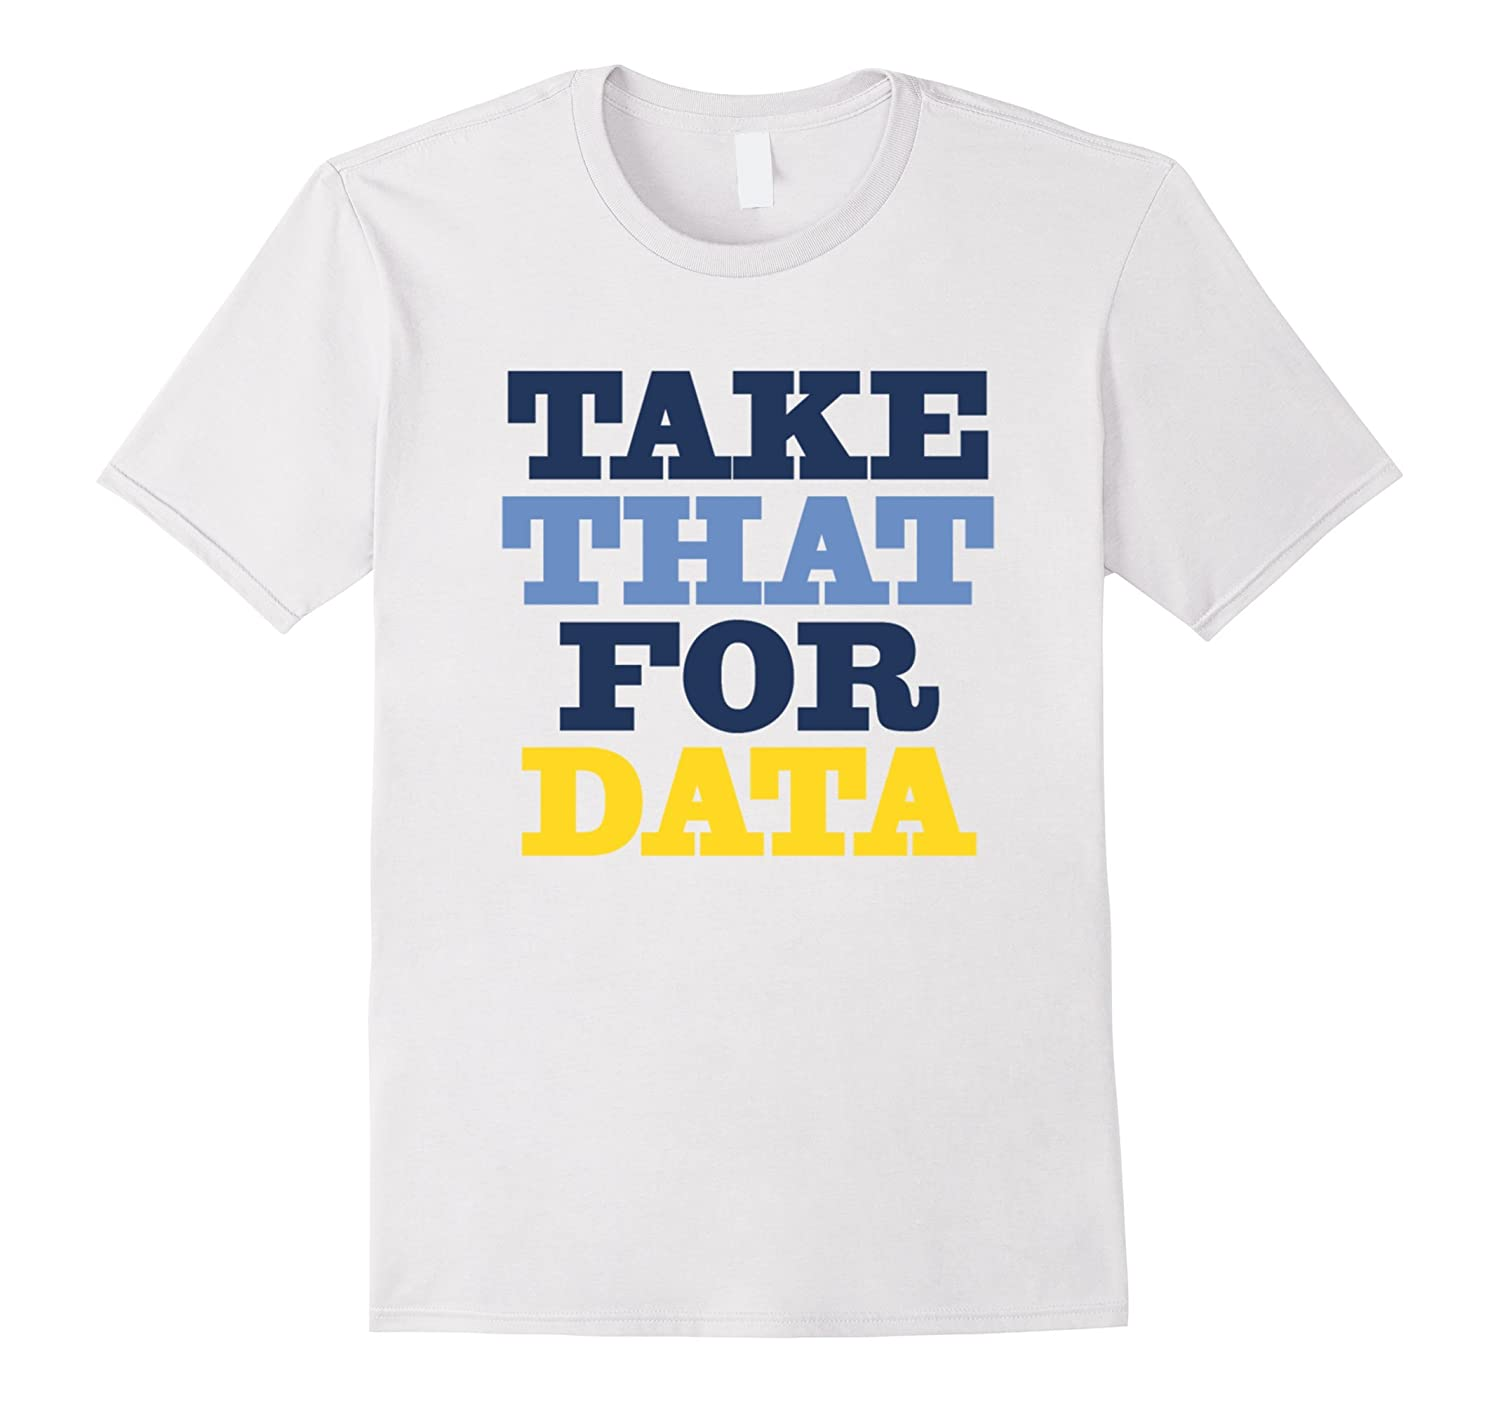 take that for data tshirt for womenman and kid-CD